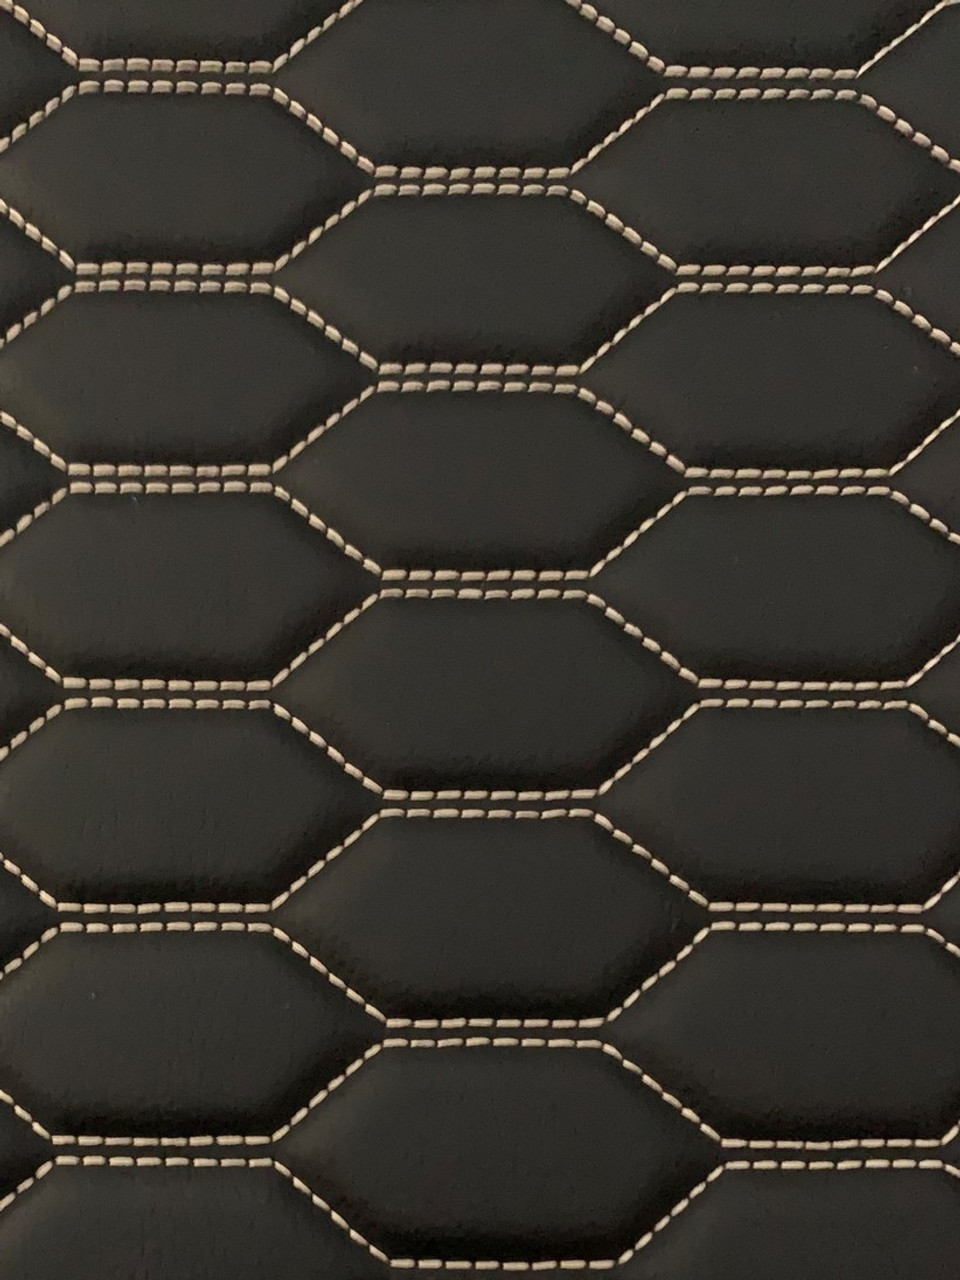 Liner - Black with Gold Thread